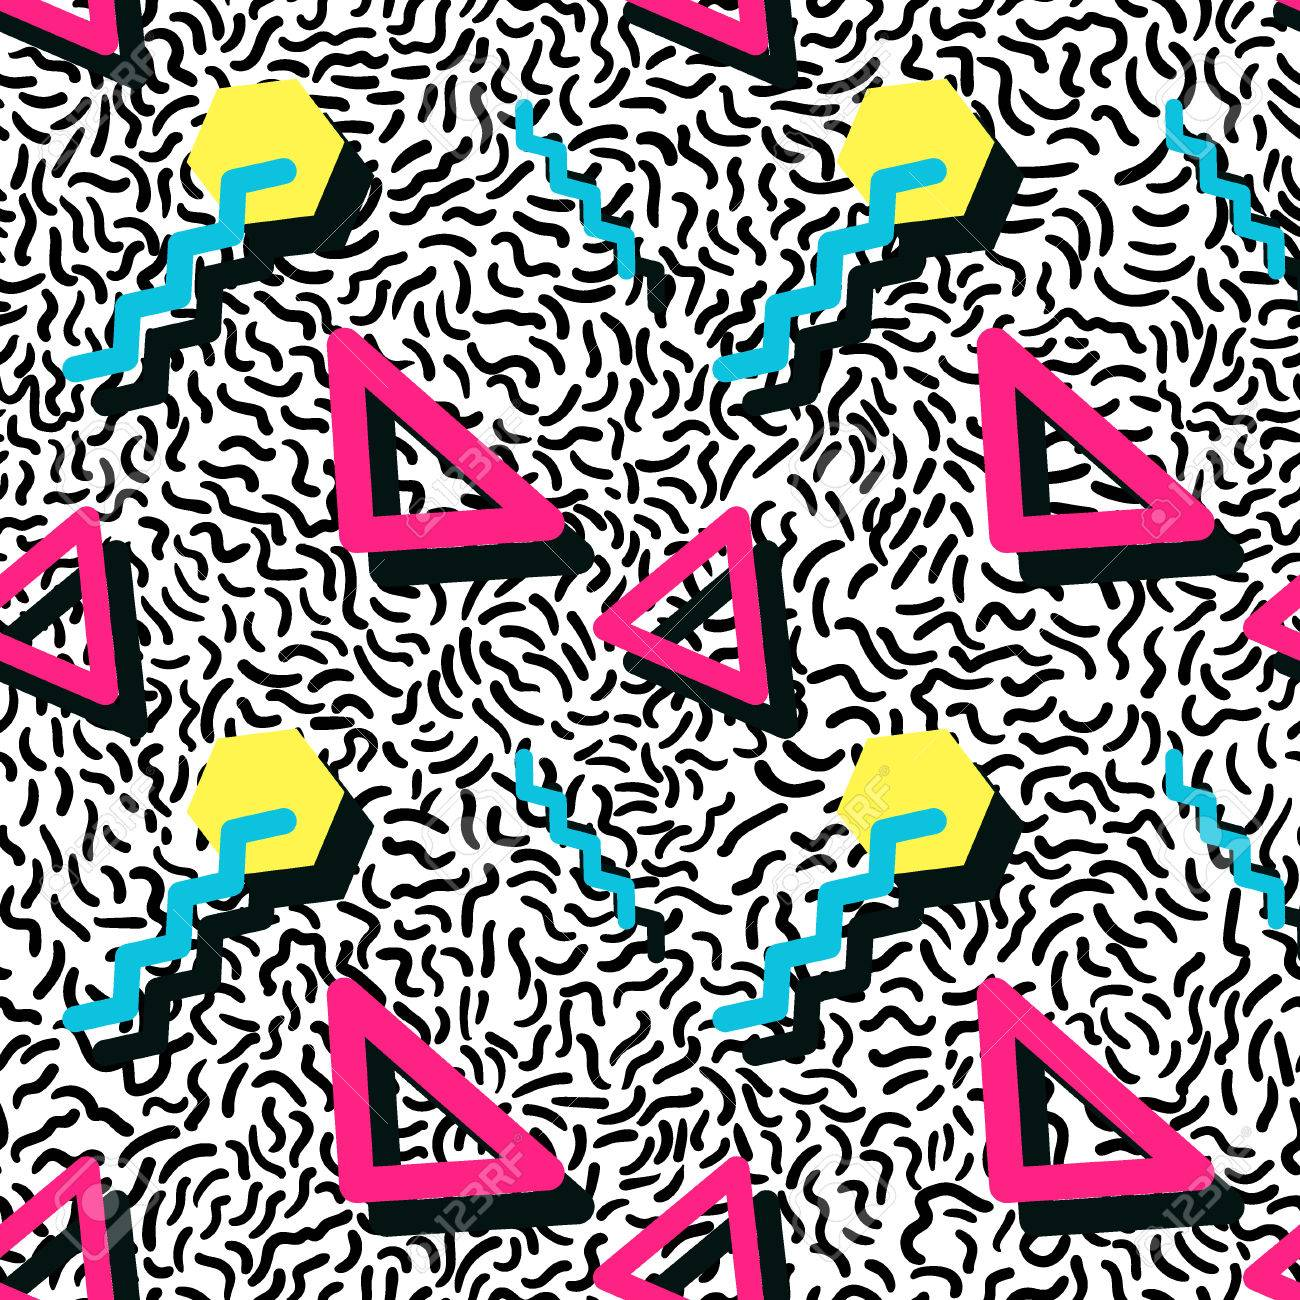 Vector Illustration of Seamless pattern in memphis style Design, Website, Background, Banner. Retro abstract geometric Element Template. 80s 90s style - 49455431